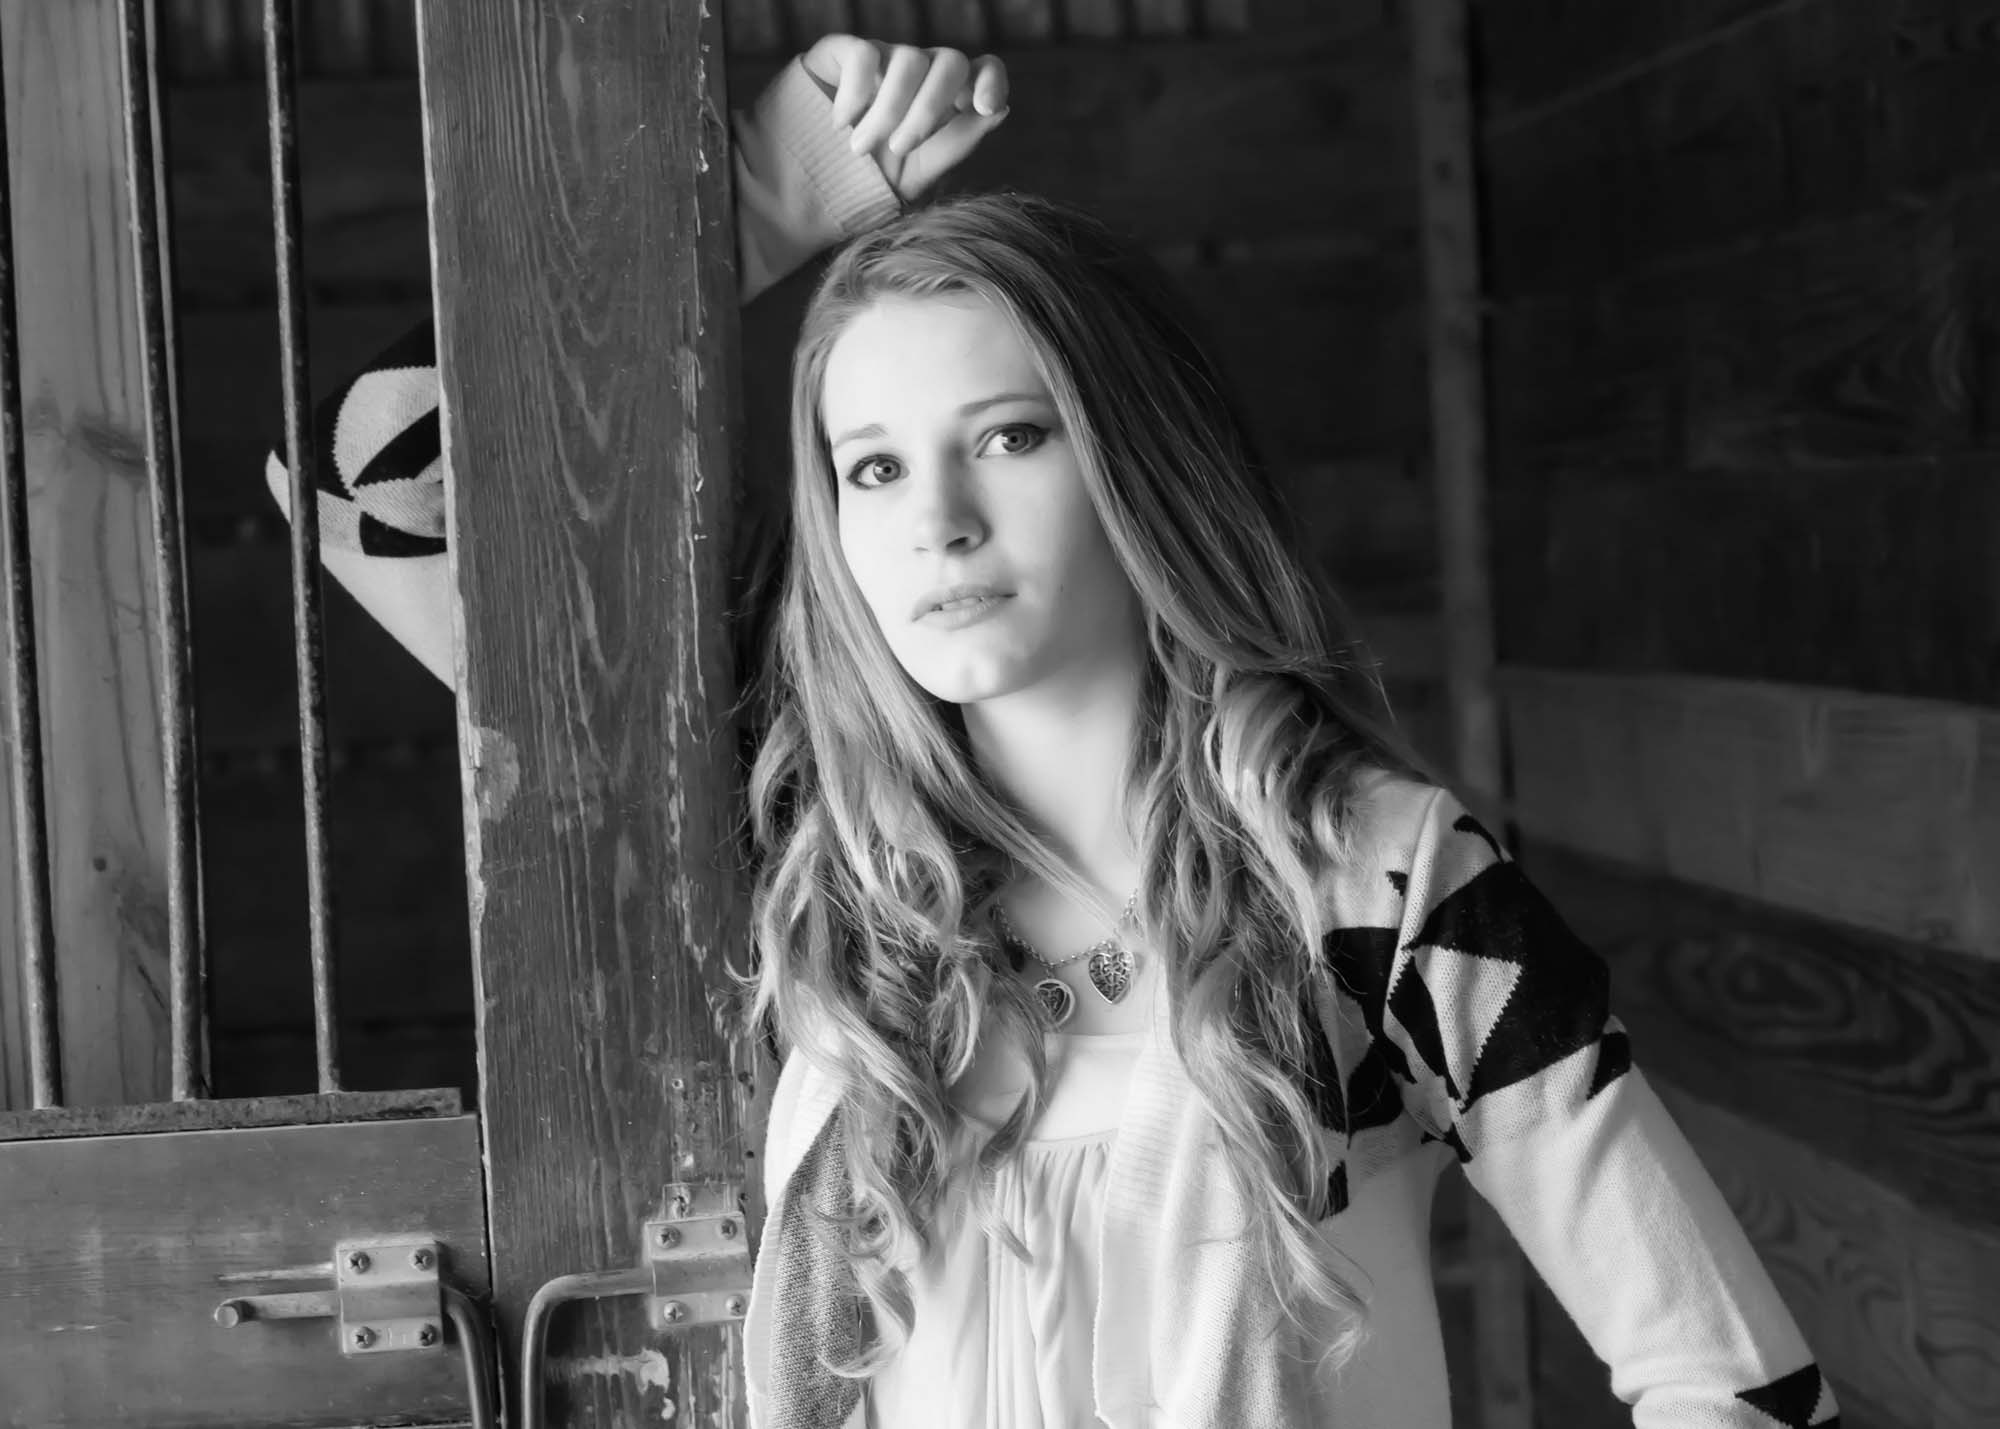 senior picture girl barn black and white